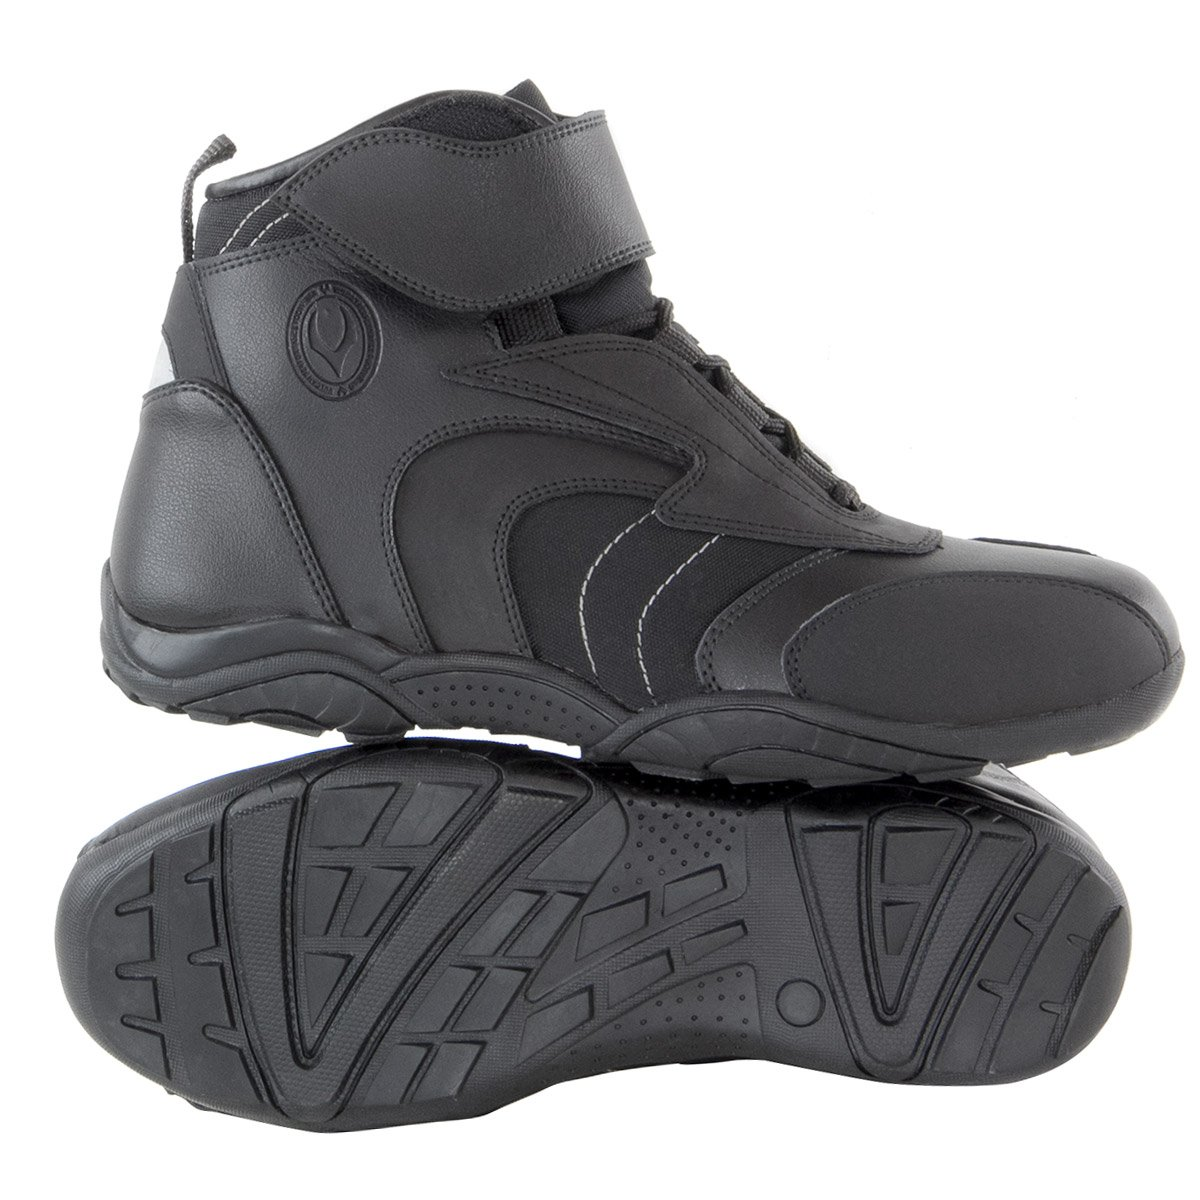 Vulcan V310 Mens Motorcycle Troop Sport Boots - 10